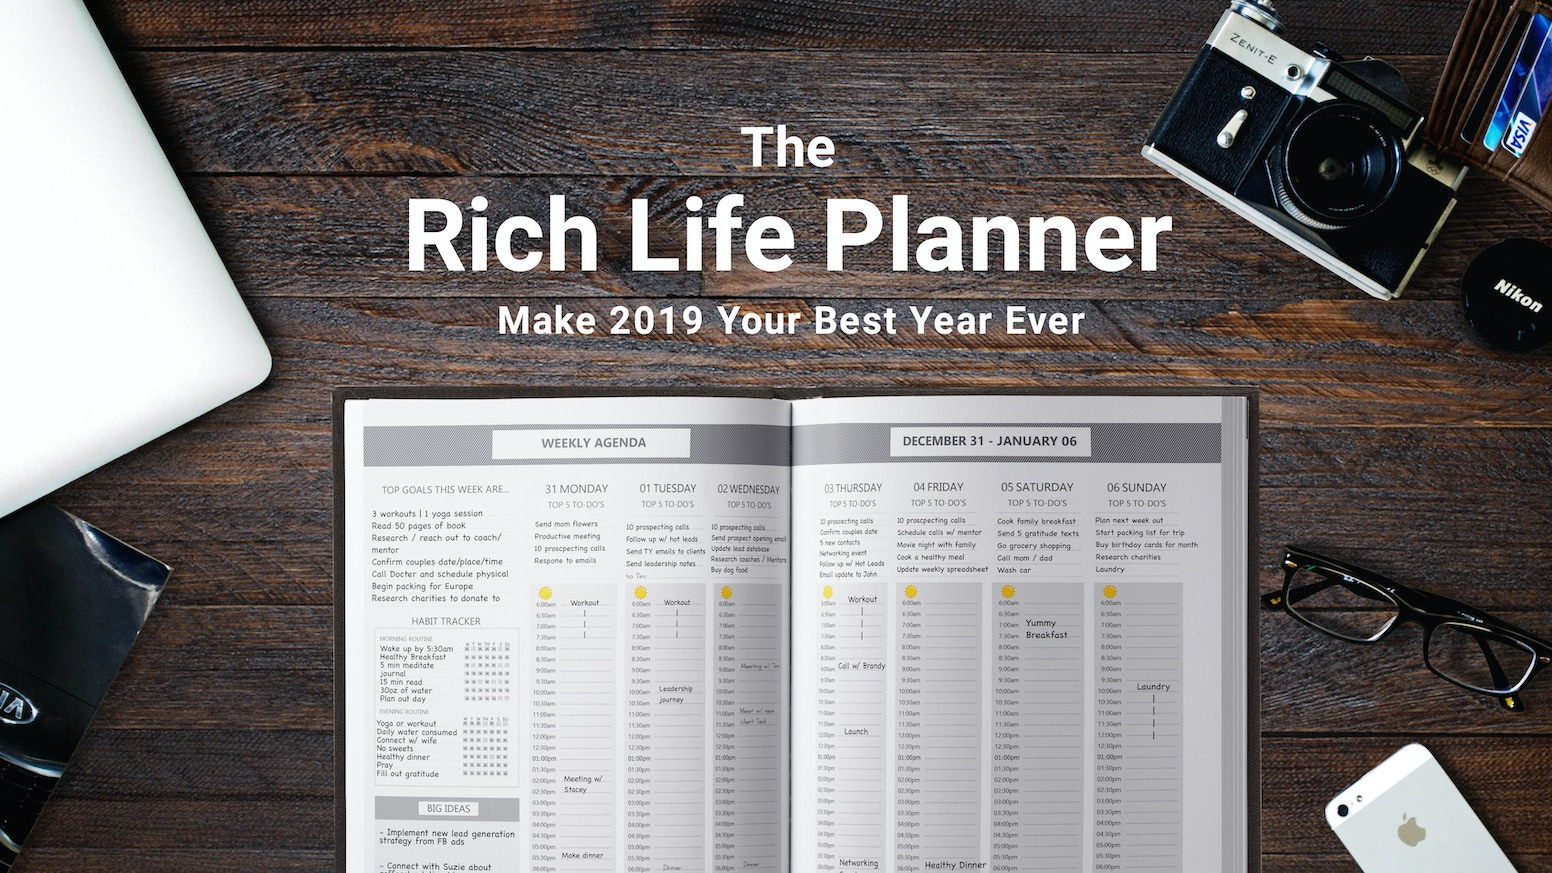 The Rich Life Planner Make 2019 Your Best Year Ever By Matt